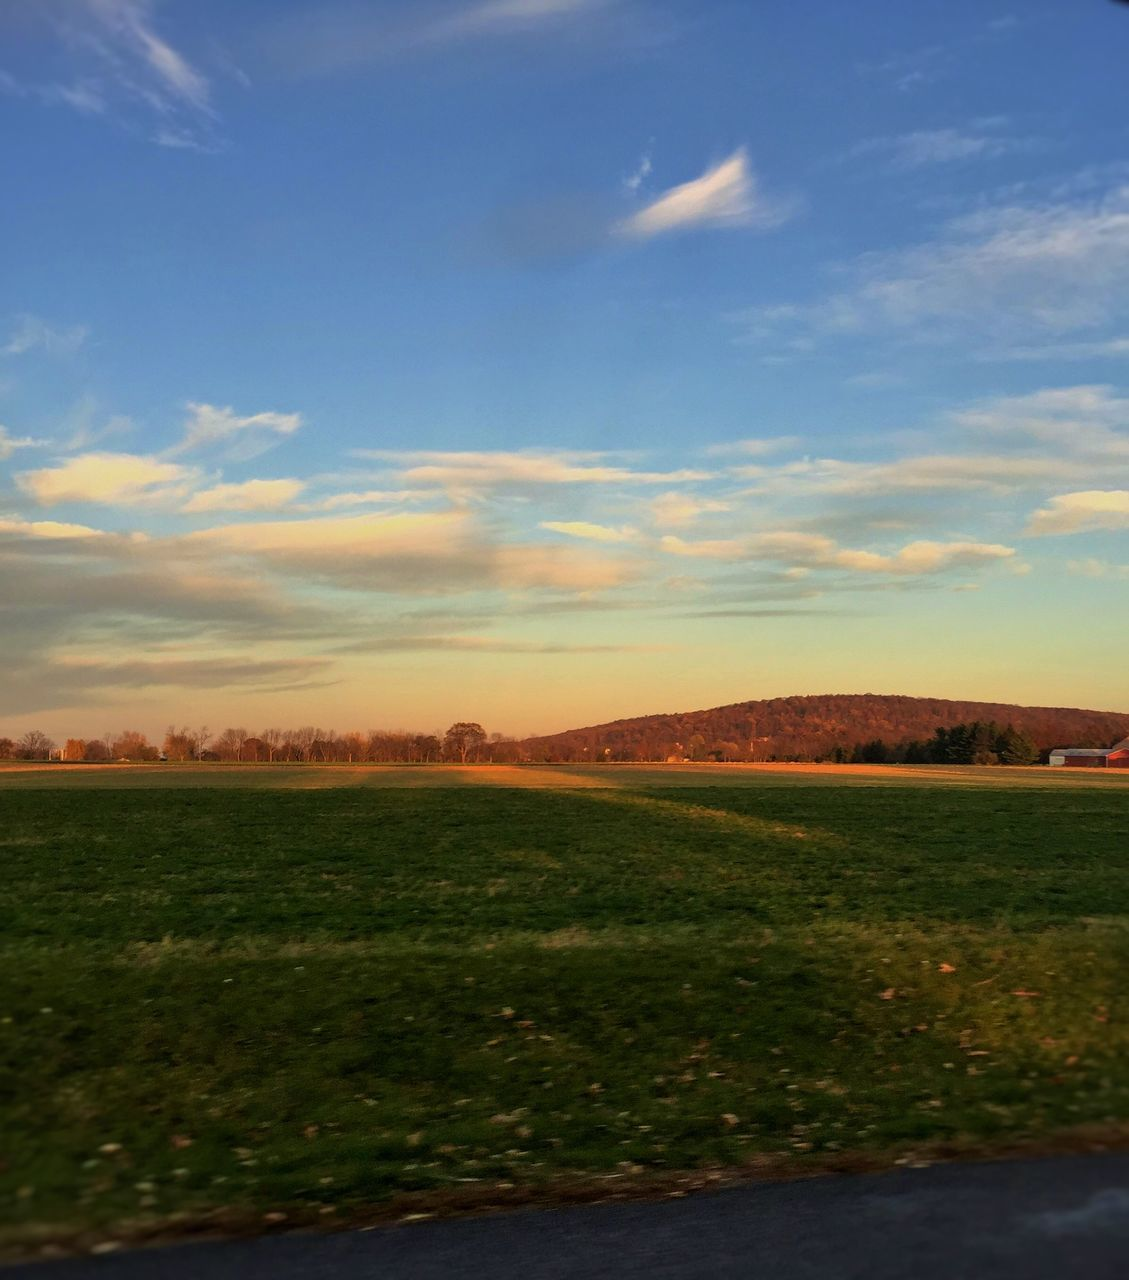 landscape, beauty in nature, tranquility, nature, tranquil scene, field, sky, scenics, no people, agriculture, grass, rural scene, outdoors, day